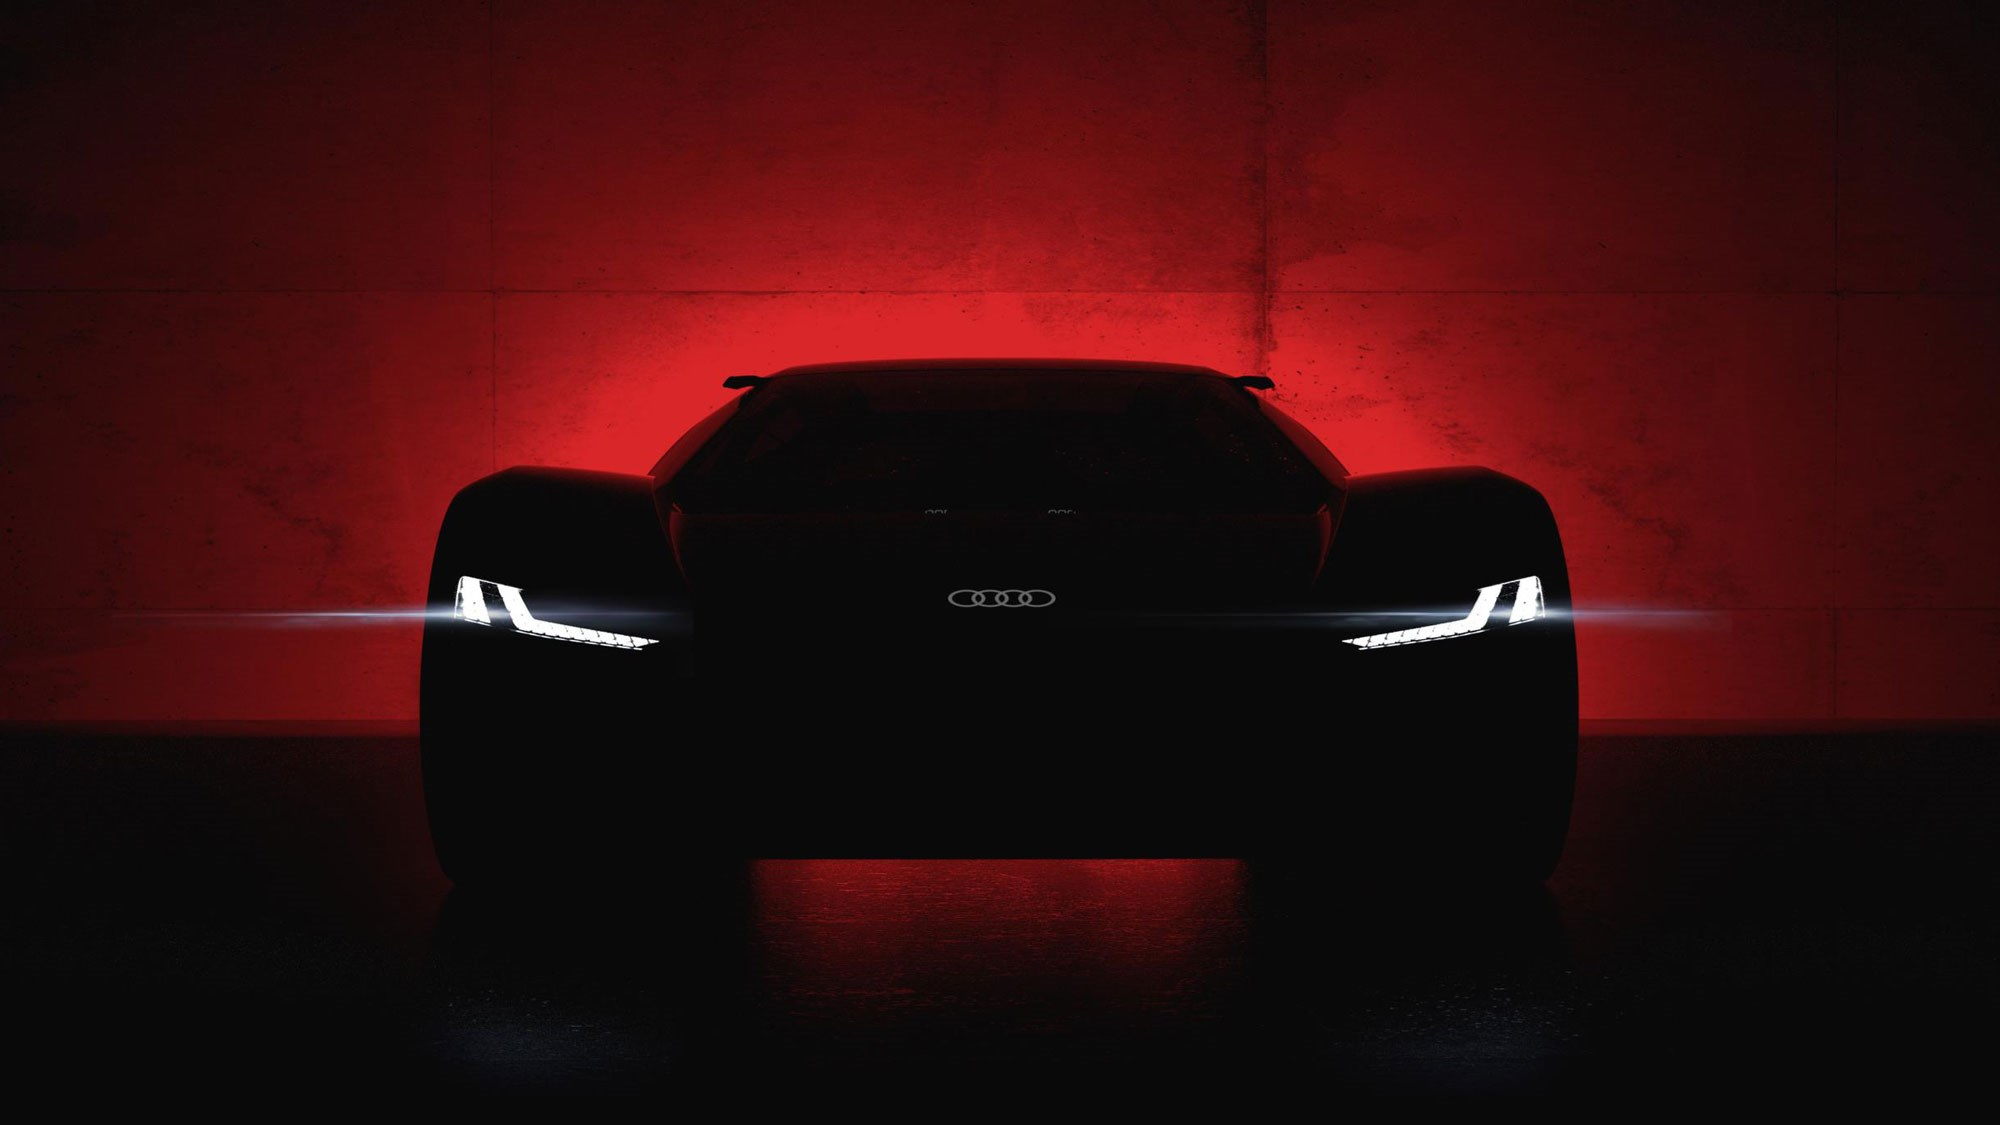 Audi PB18 e-tron supercar teased for Pebble Beach debut